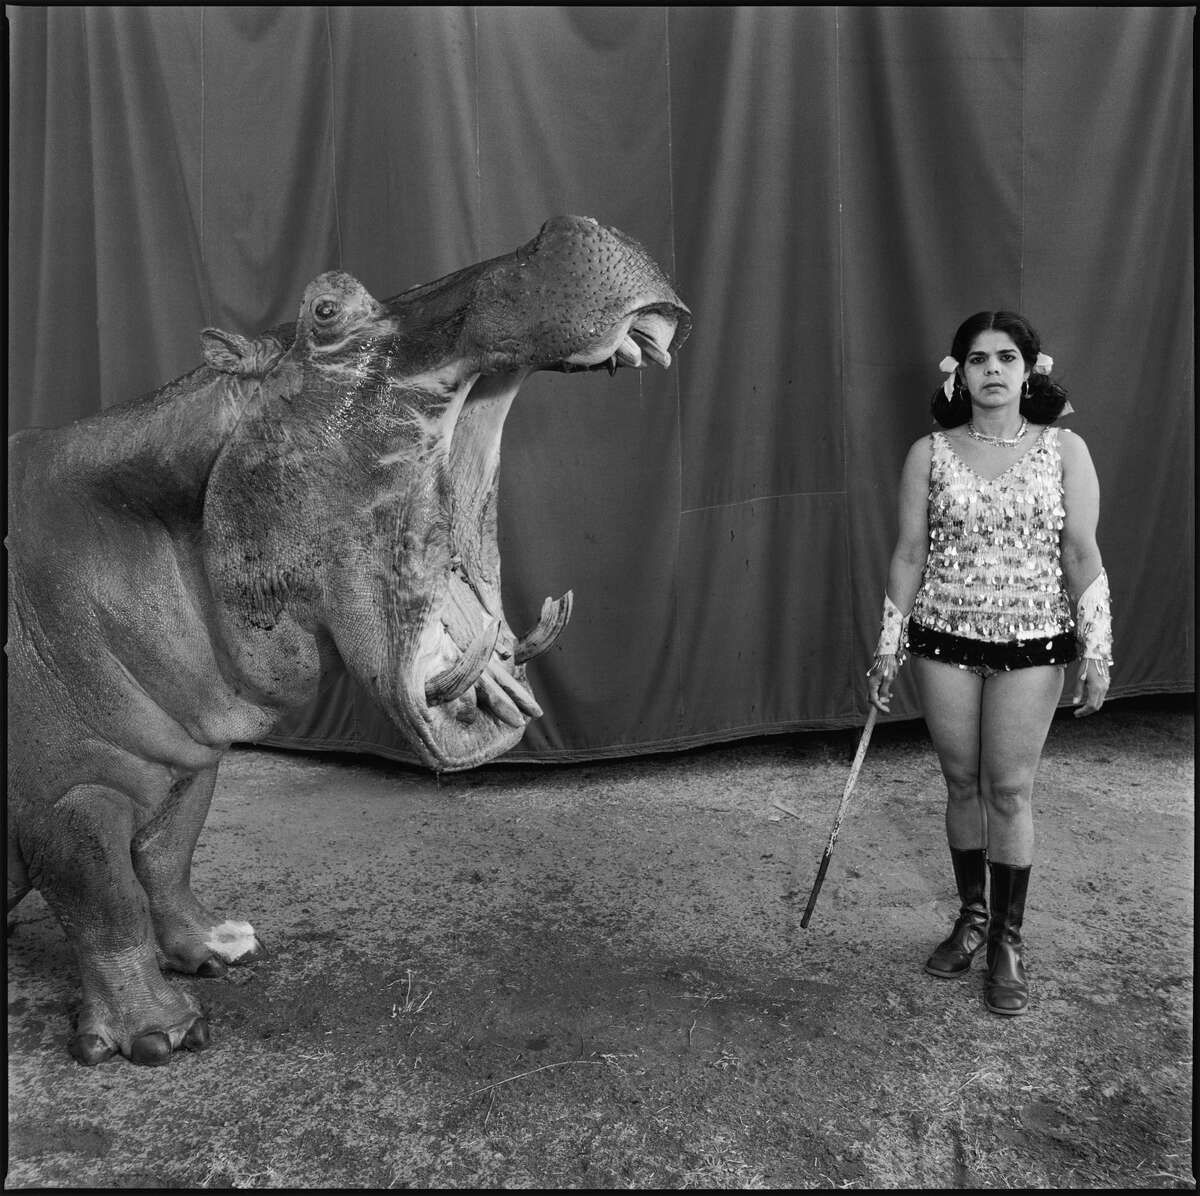 """Magnum Photos and the Aperture Foundation are putting more than 100 iconic, fine-art photos up for sale through Nov. 2. The theme of the sale is """"crossings."""" We've selected 15, beginning with a circus photograph by the late Mary Ellen Mark; more can be found here. Mary Ellen Mark: Hippopotamus and Performer, Great Rayman Circus. Madras, India. 1989. © Mary Ellen Mark courtesy Aperture """"Photographing the Indian circus was one of the most beautiful, joyous, and special times of my career. I was allowed to document a magic fantasy that was, at the same time, all so real. It was full of ironies, often humorous and sometimes sad, beautiful and ugly, loving and at times cruel, but always human. The Indian circus is a metaphor for everything that has always fascinated me visually."""""""